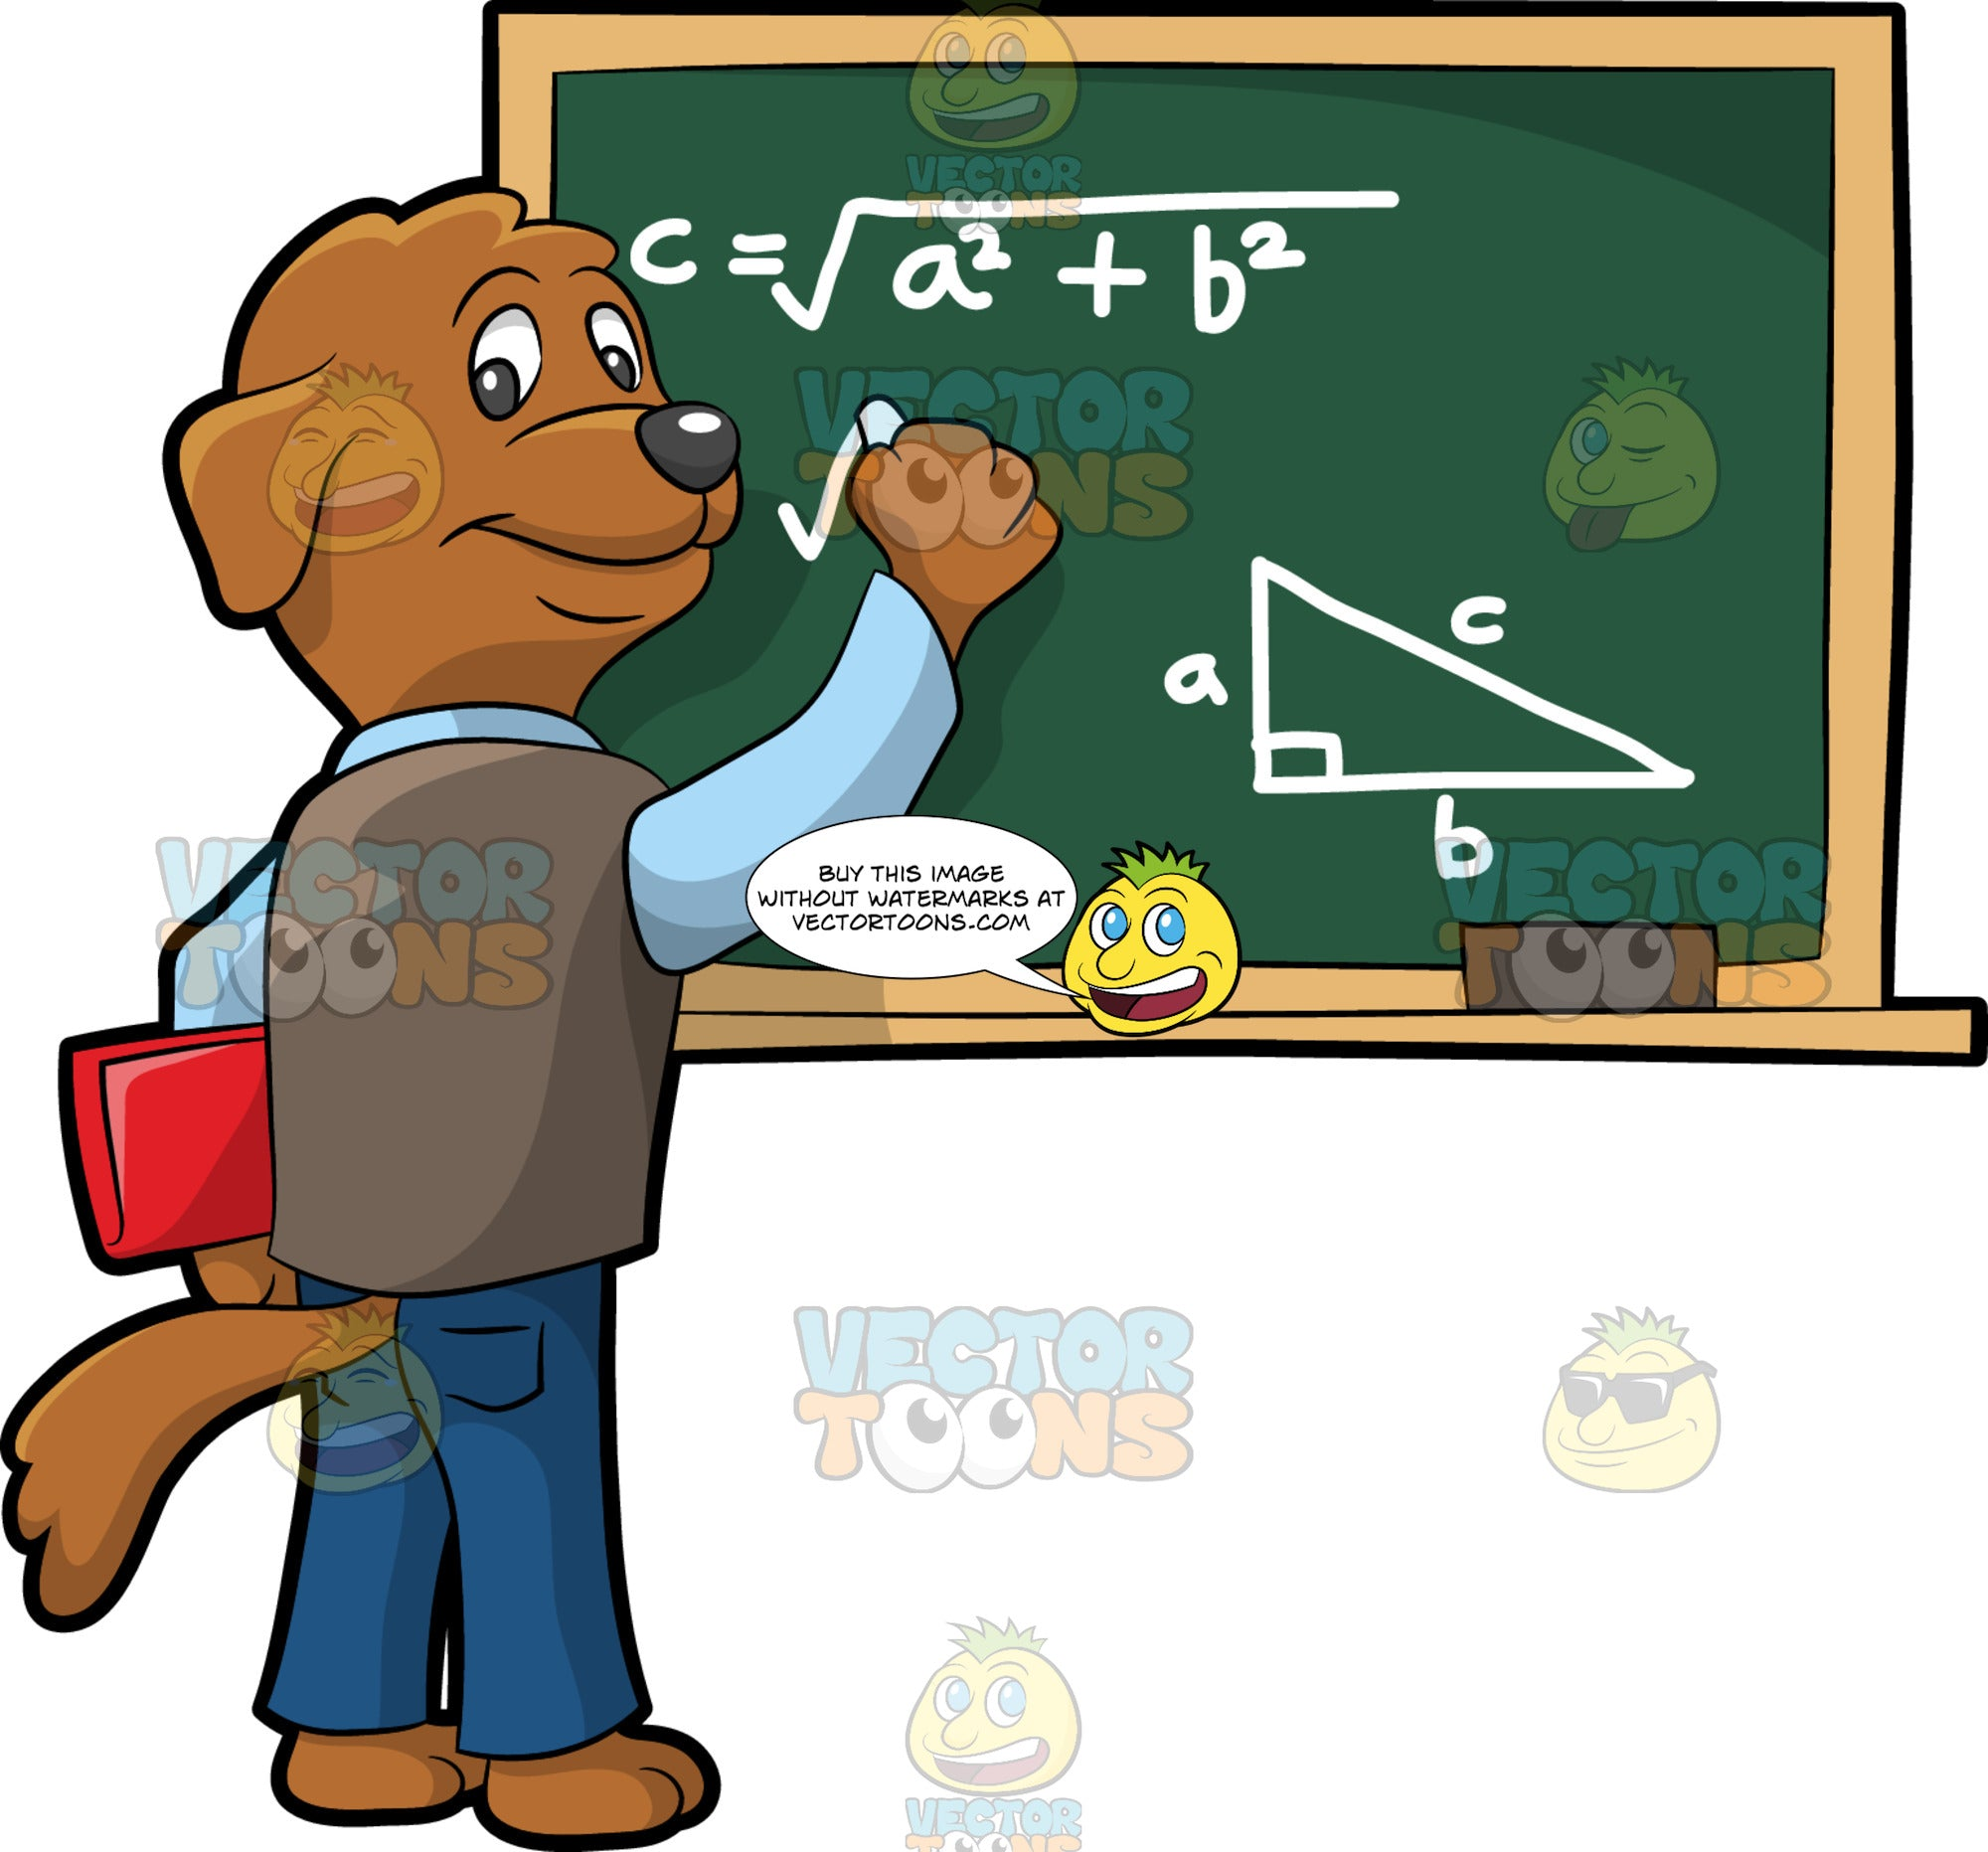 A Math Teacher Dog. A dog with brown coat, dark gray nose, wearing a light blue dress shirt under a pale brown vest, blue jeans, smiles while carrying a red folder in between his left arm and side belly, as he writes the Pythagorean theorem using a white chalk on a green board with pale beige border and a brown eraser